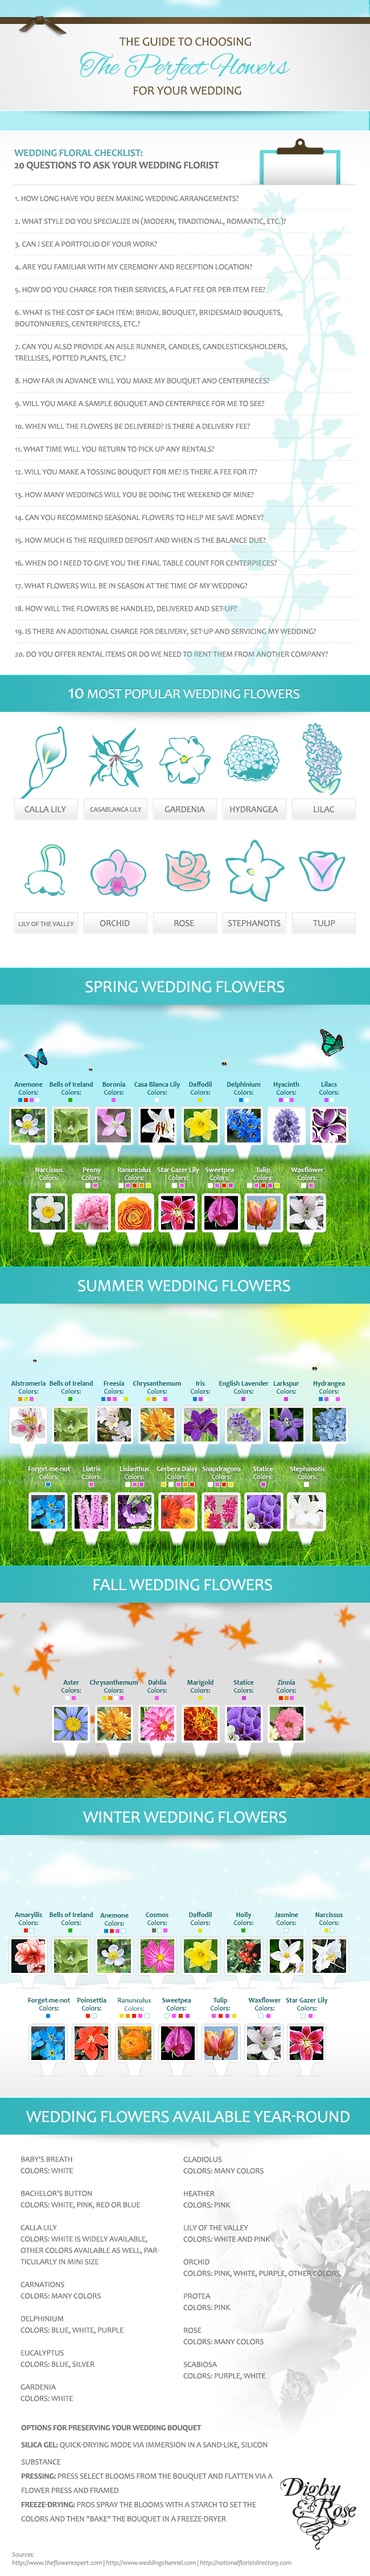 Guide to Choose the Perfect Flower for Your Wedding